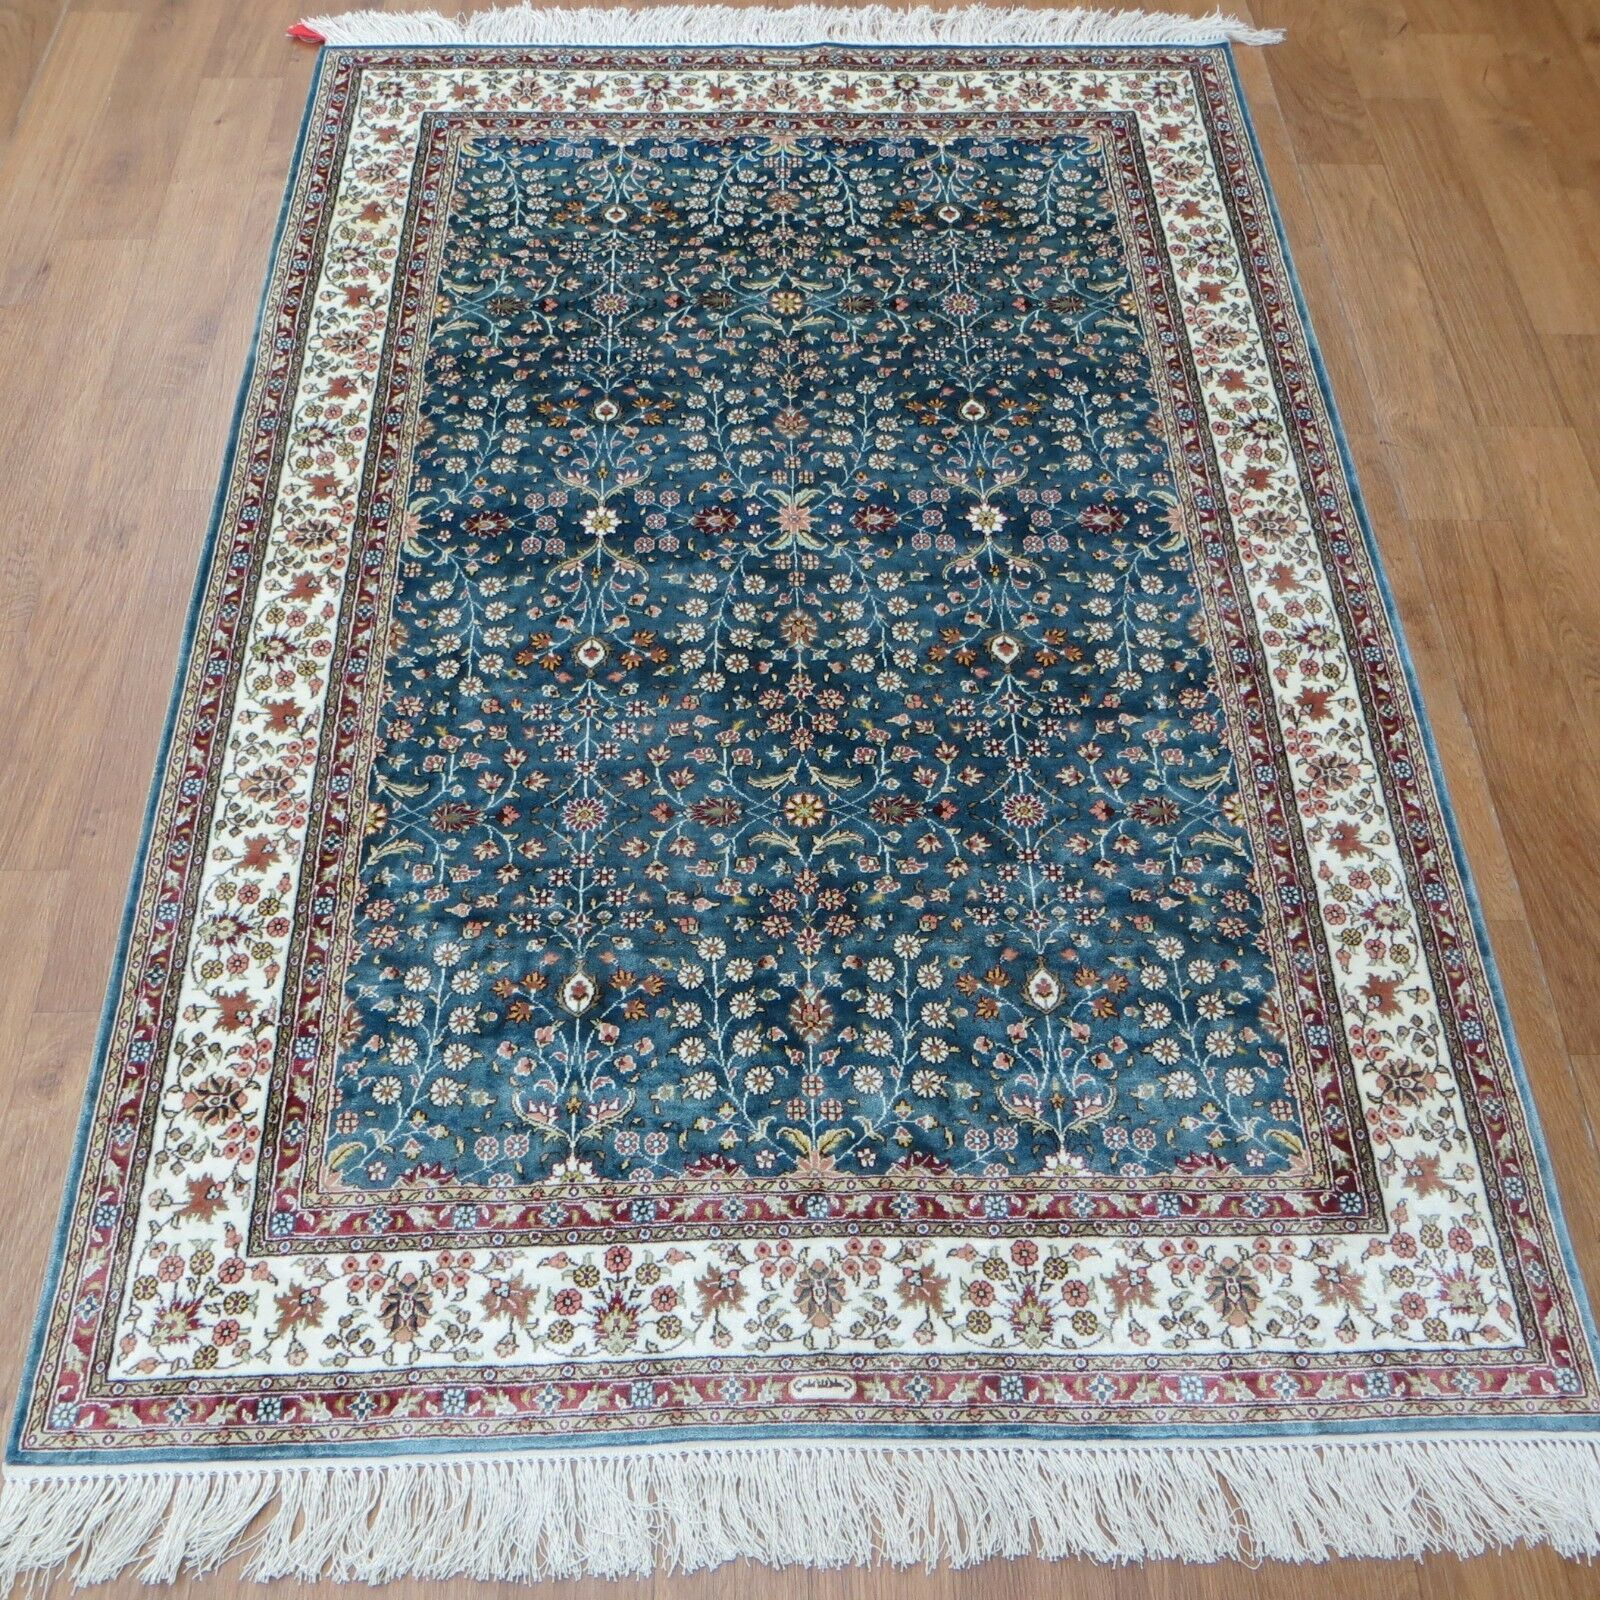 Persian Rugs Wellington: How Much Is A Persian Rug. Persian Rugs Price Guide